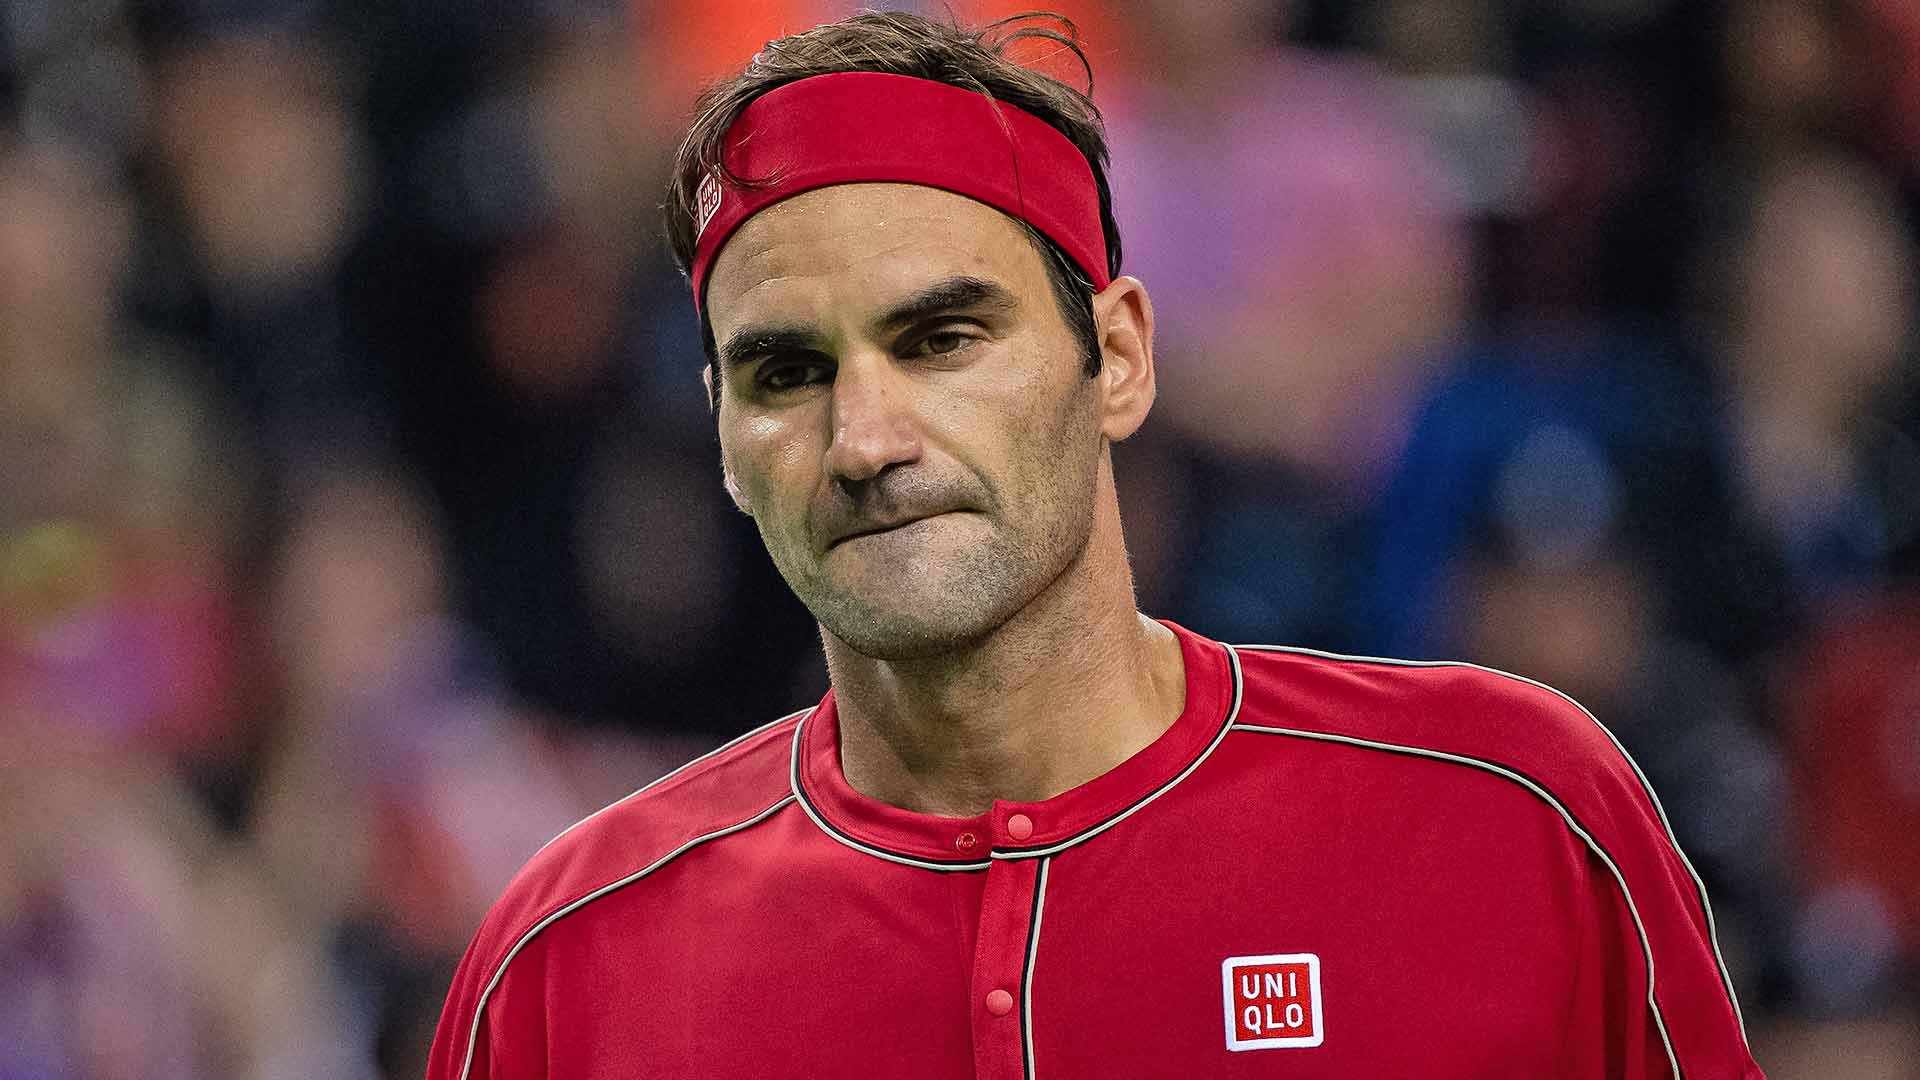 Roger Federer falls to 5-1 in Rolex Shanghai Masters quarter-finals on Friday.